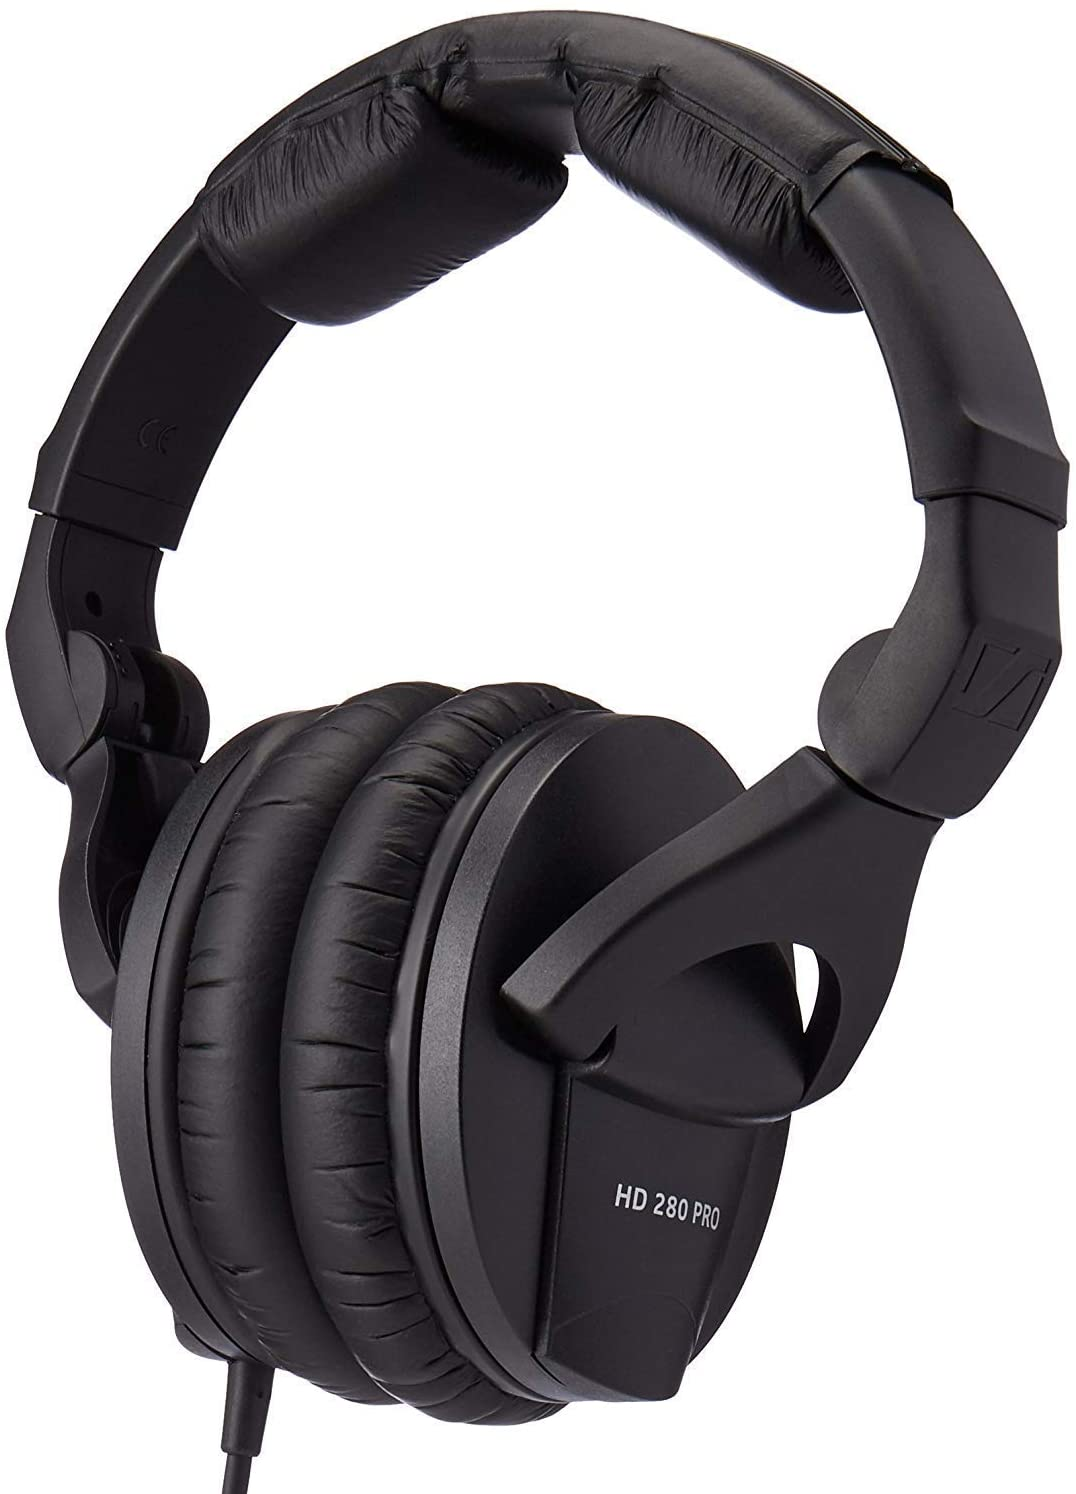 10 Best Closed Back Headphones 2021 - Buying Guide 5